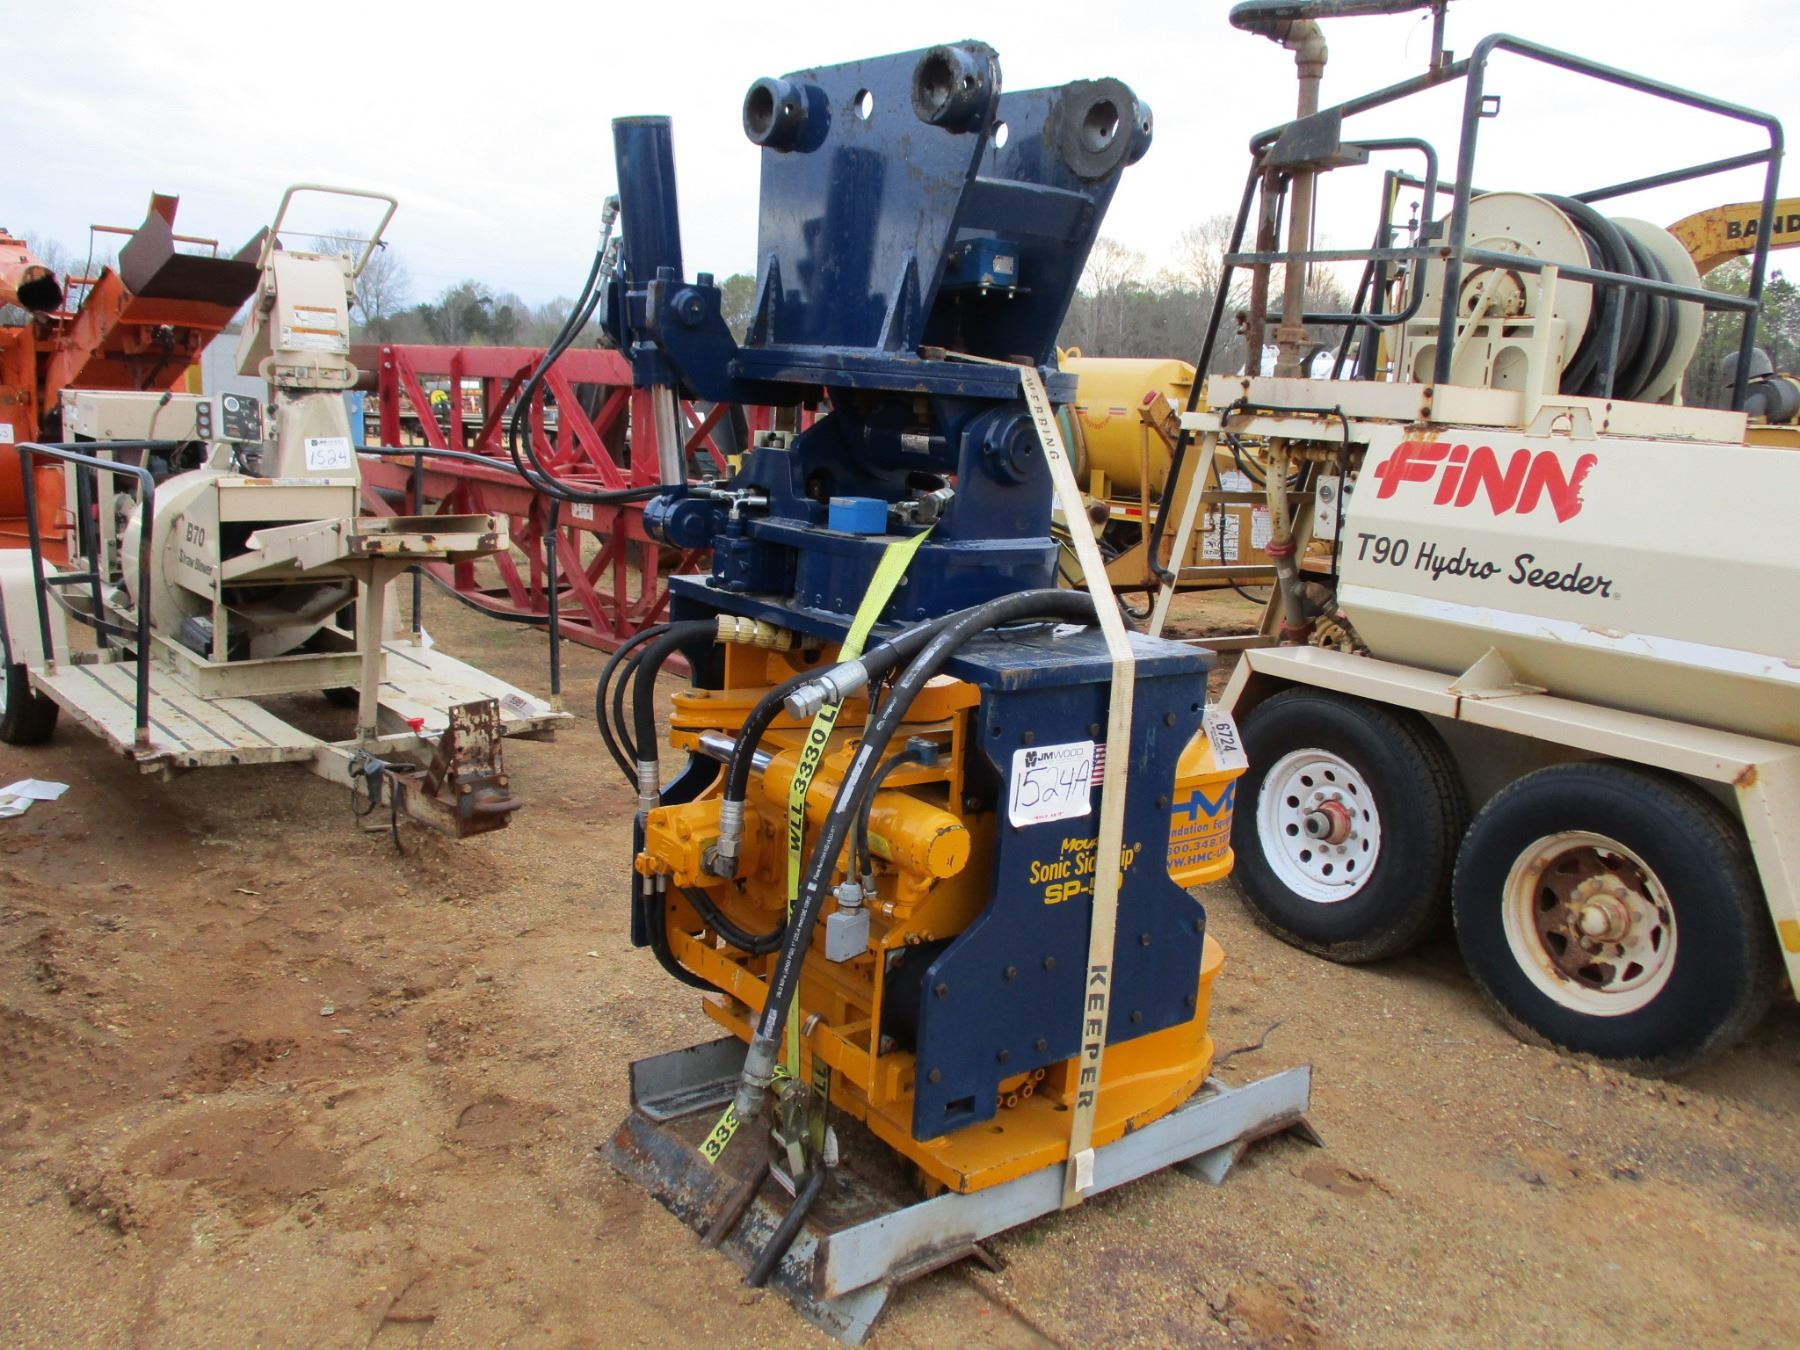 HMC SP-50 SONIC SIDE GRIP, PILE DRIVER, SHEET PILE IMPLEMENT, FITS HYD  EXCAVATOR, CONTROL IN OFFICE